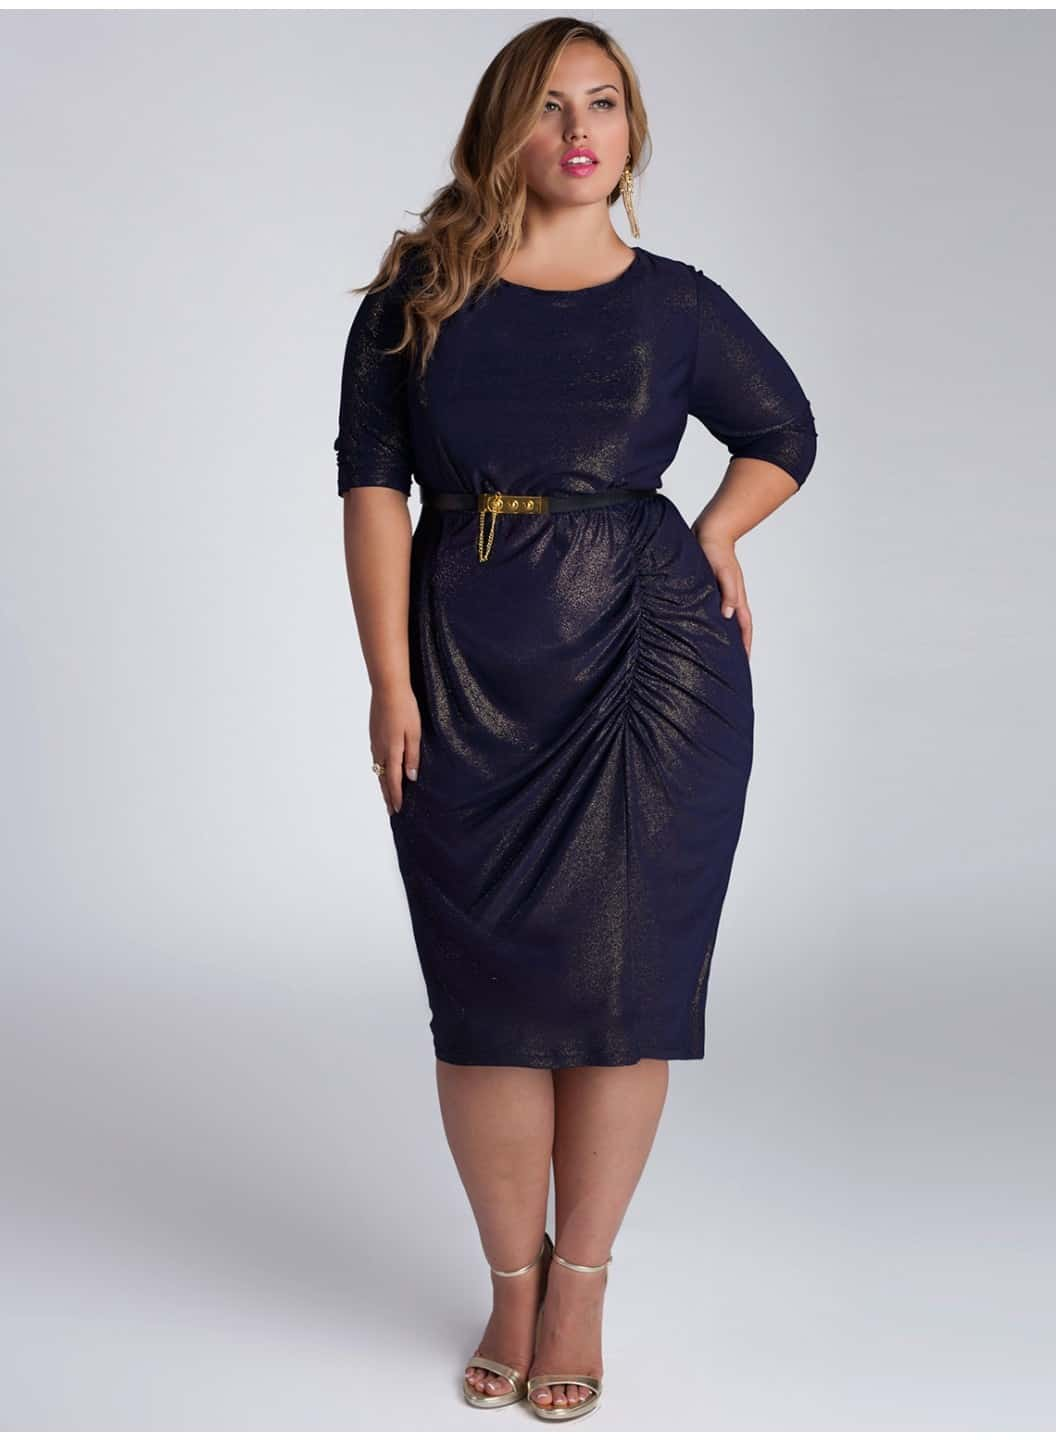 Women's plus size cocktail and evening dresses trends Autumn ...